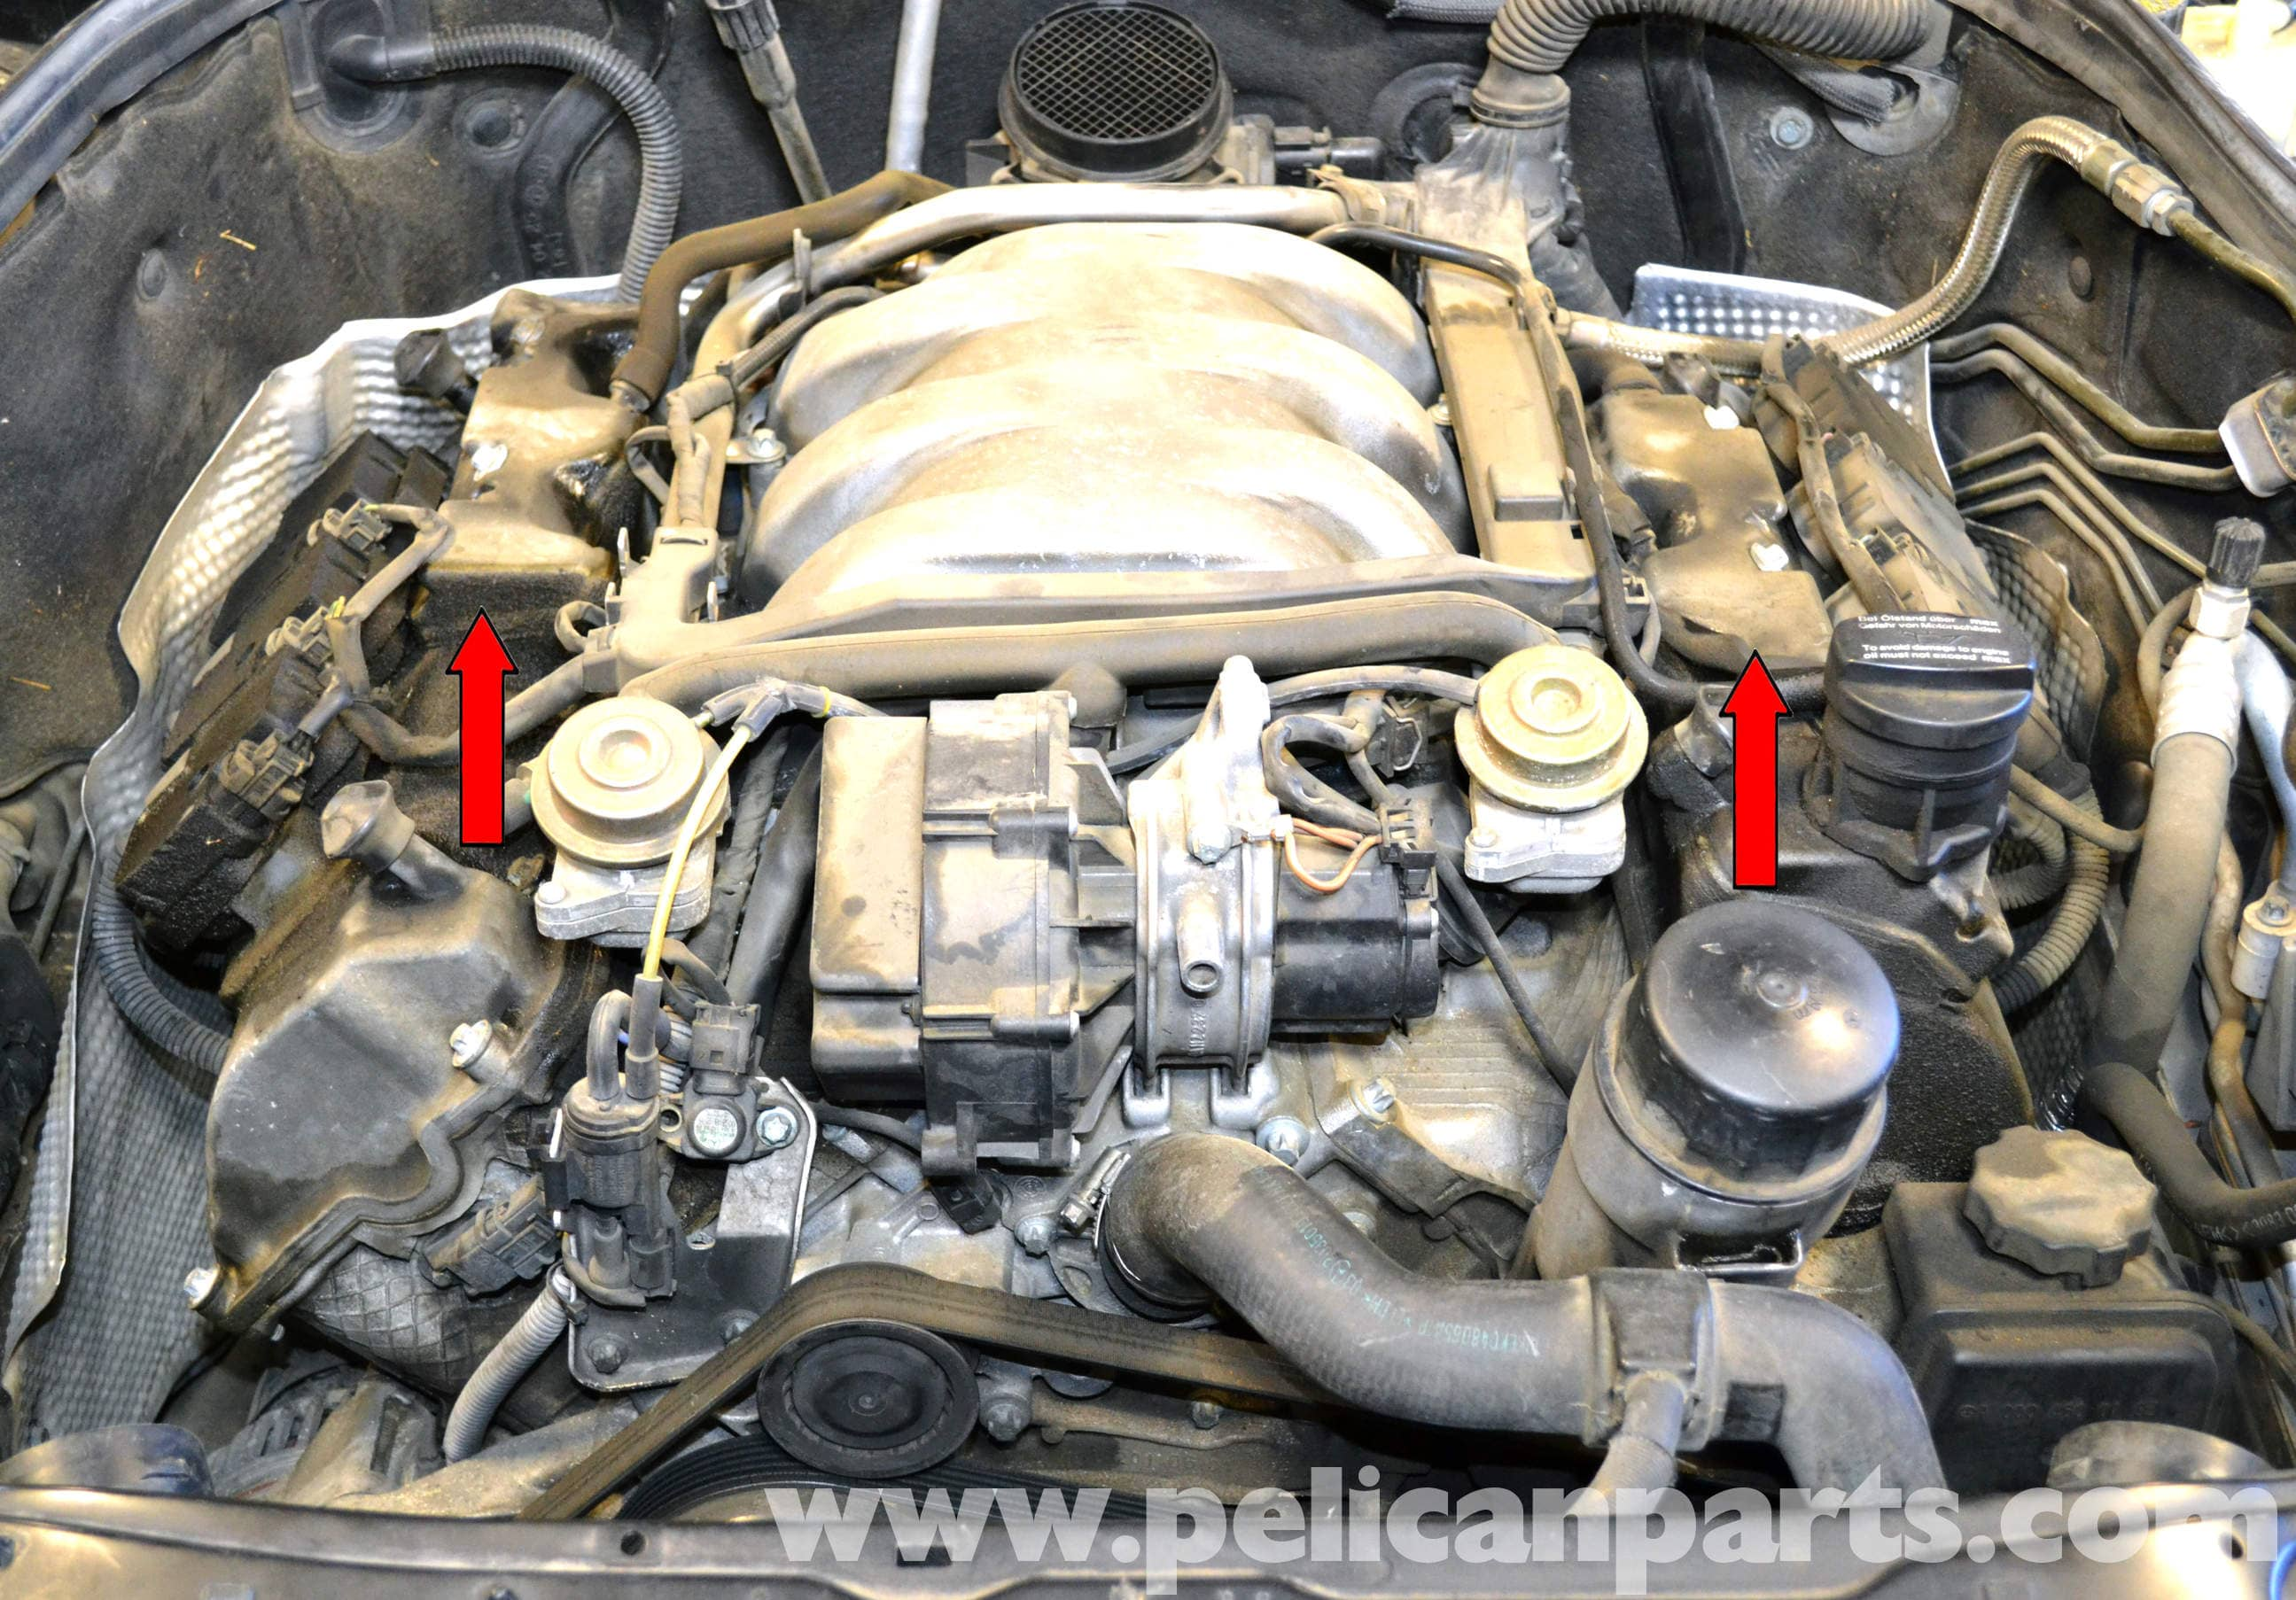 MercedesBenz W203 Spark Plug and Coil Replacement 20012007